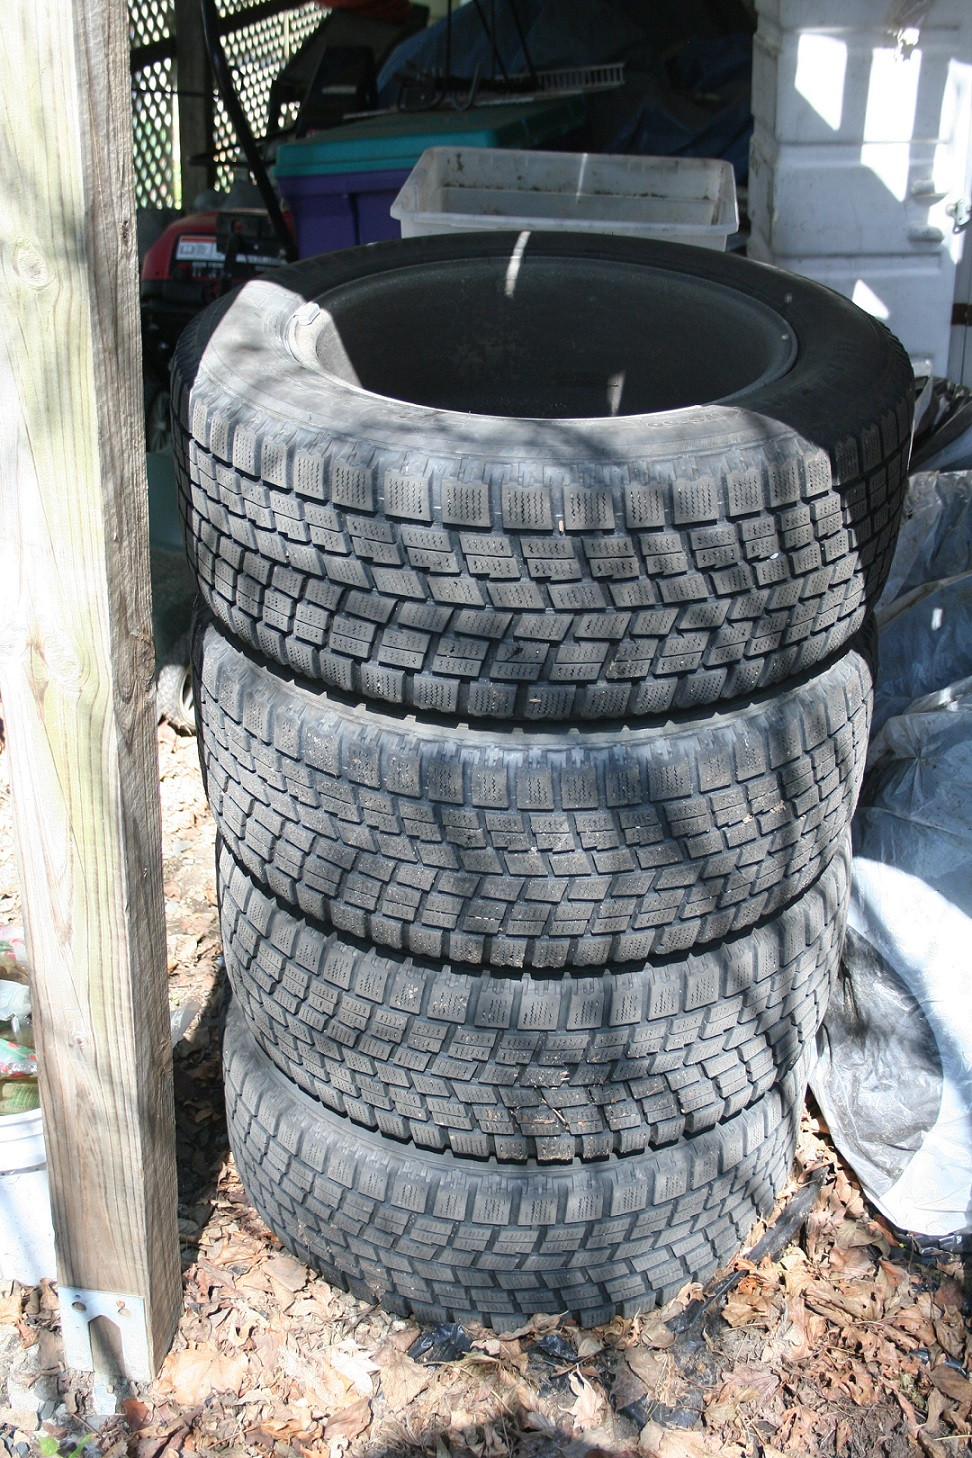 Stacking wheels and tires is tempting, as it reduces space, but it's the worst way to store them outside. (This is just for show. I don't really do this. Honest!)